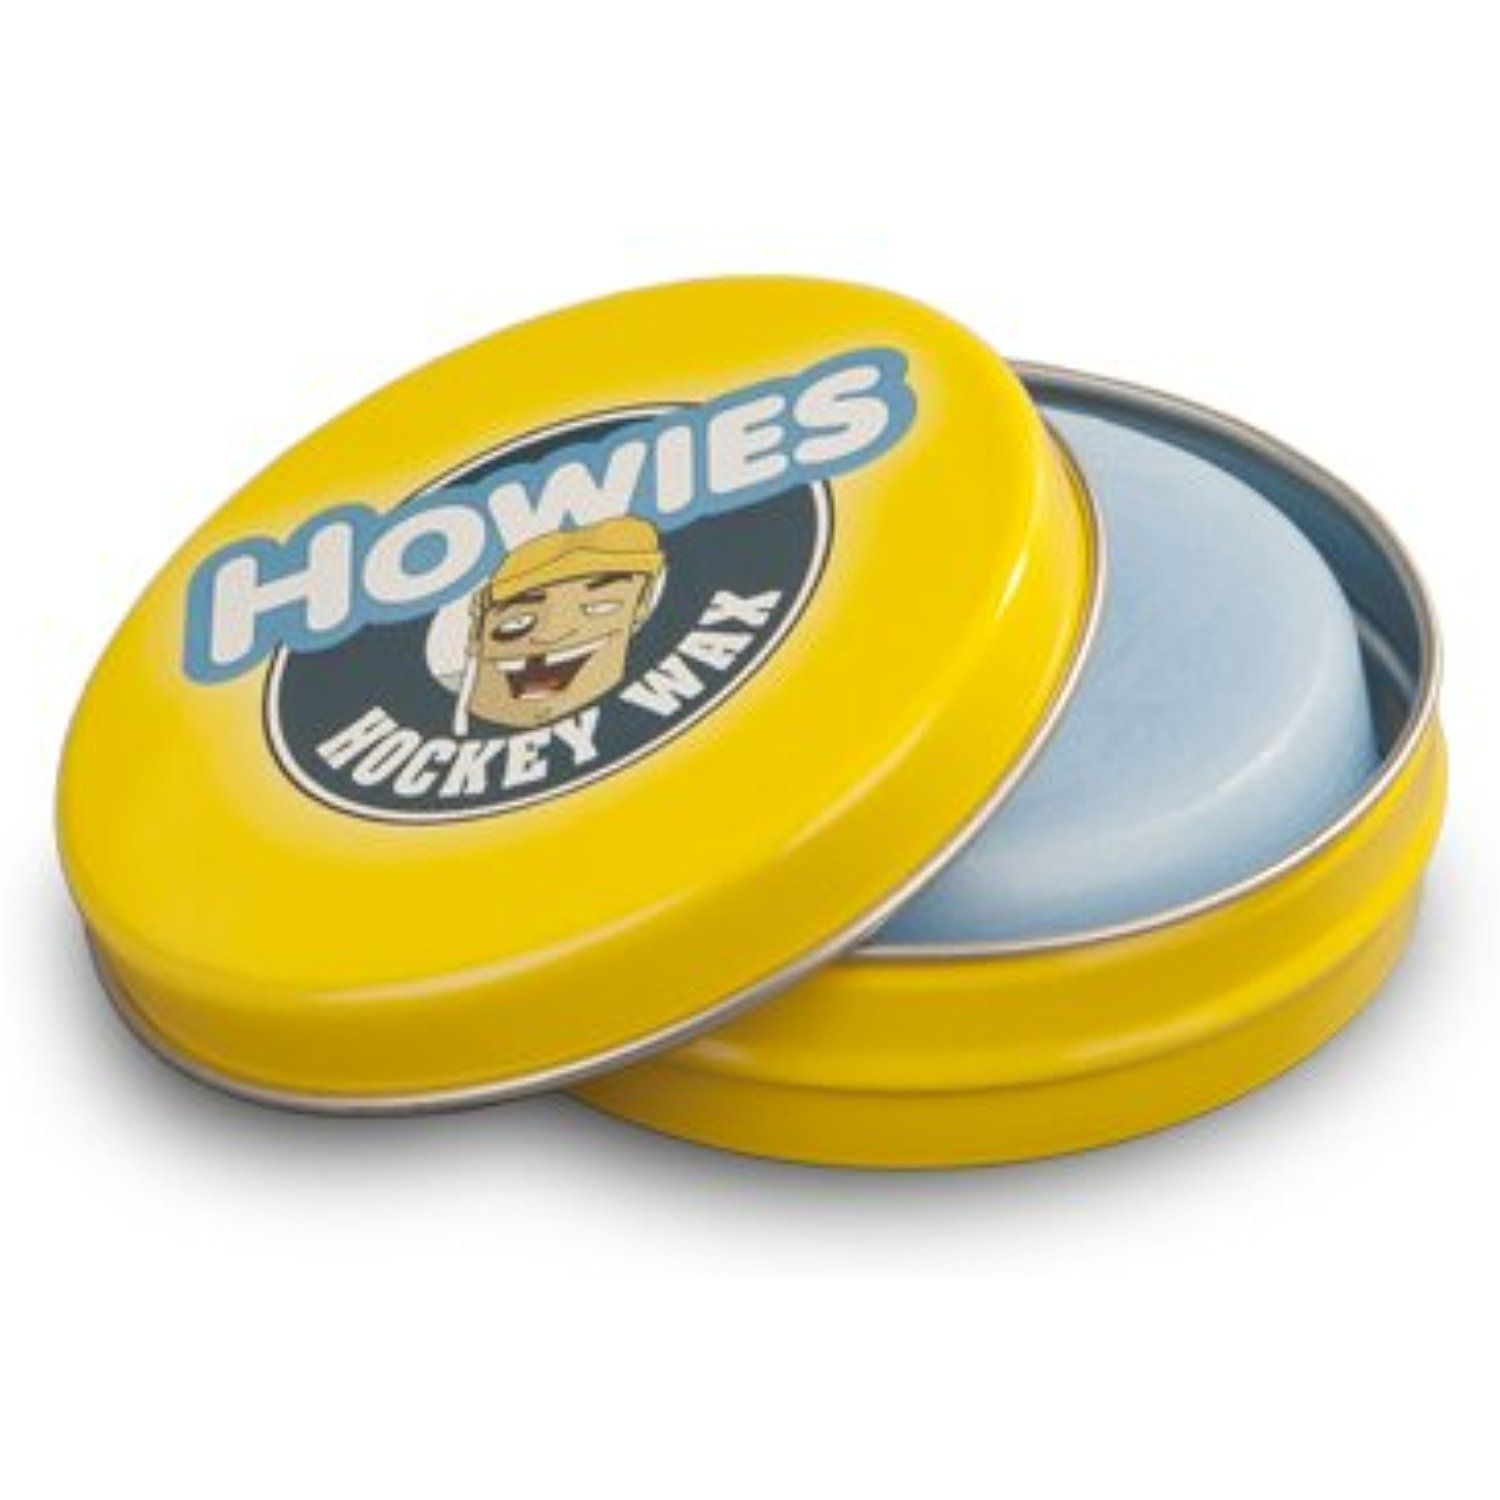 Howies Hockey Tape Hockey Stick Wax 3 Pack Want To Know More Click On The Image This Is An Affiliate Link Hockey Tape Hockey Stick Hockey Stick Bag